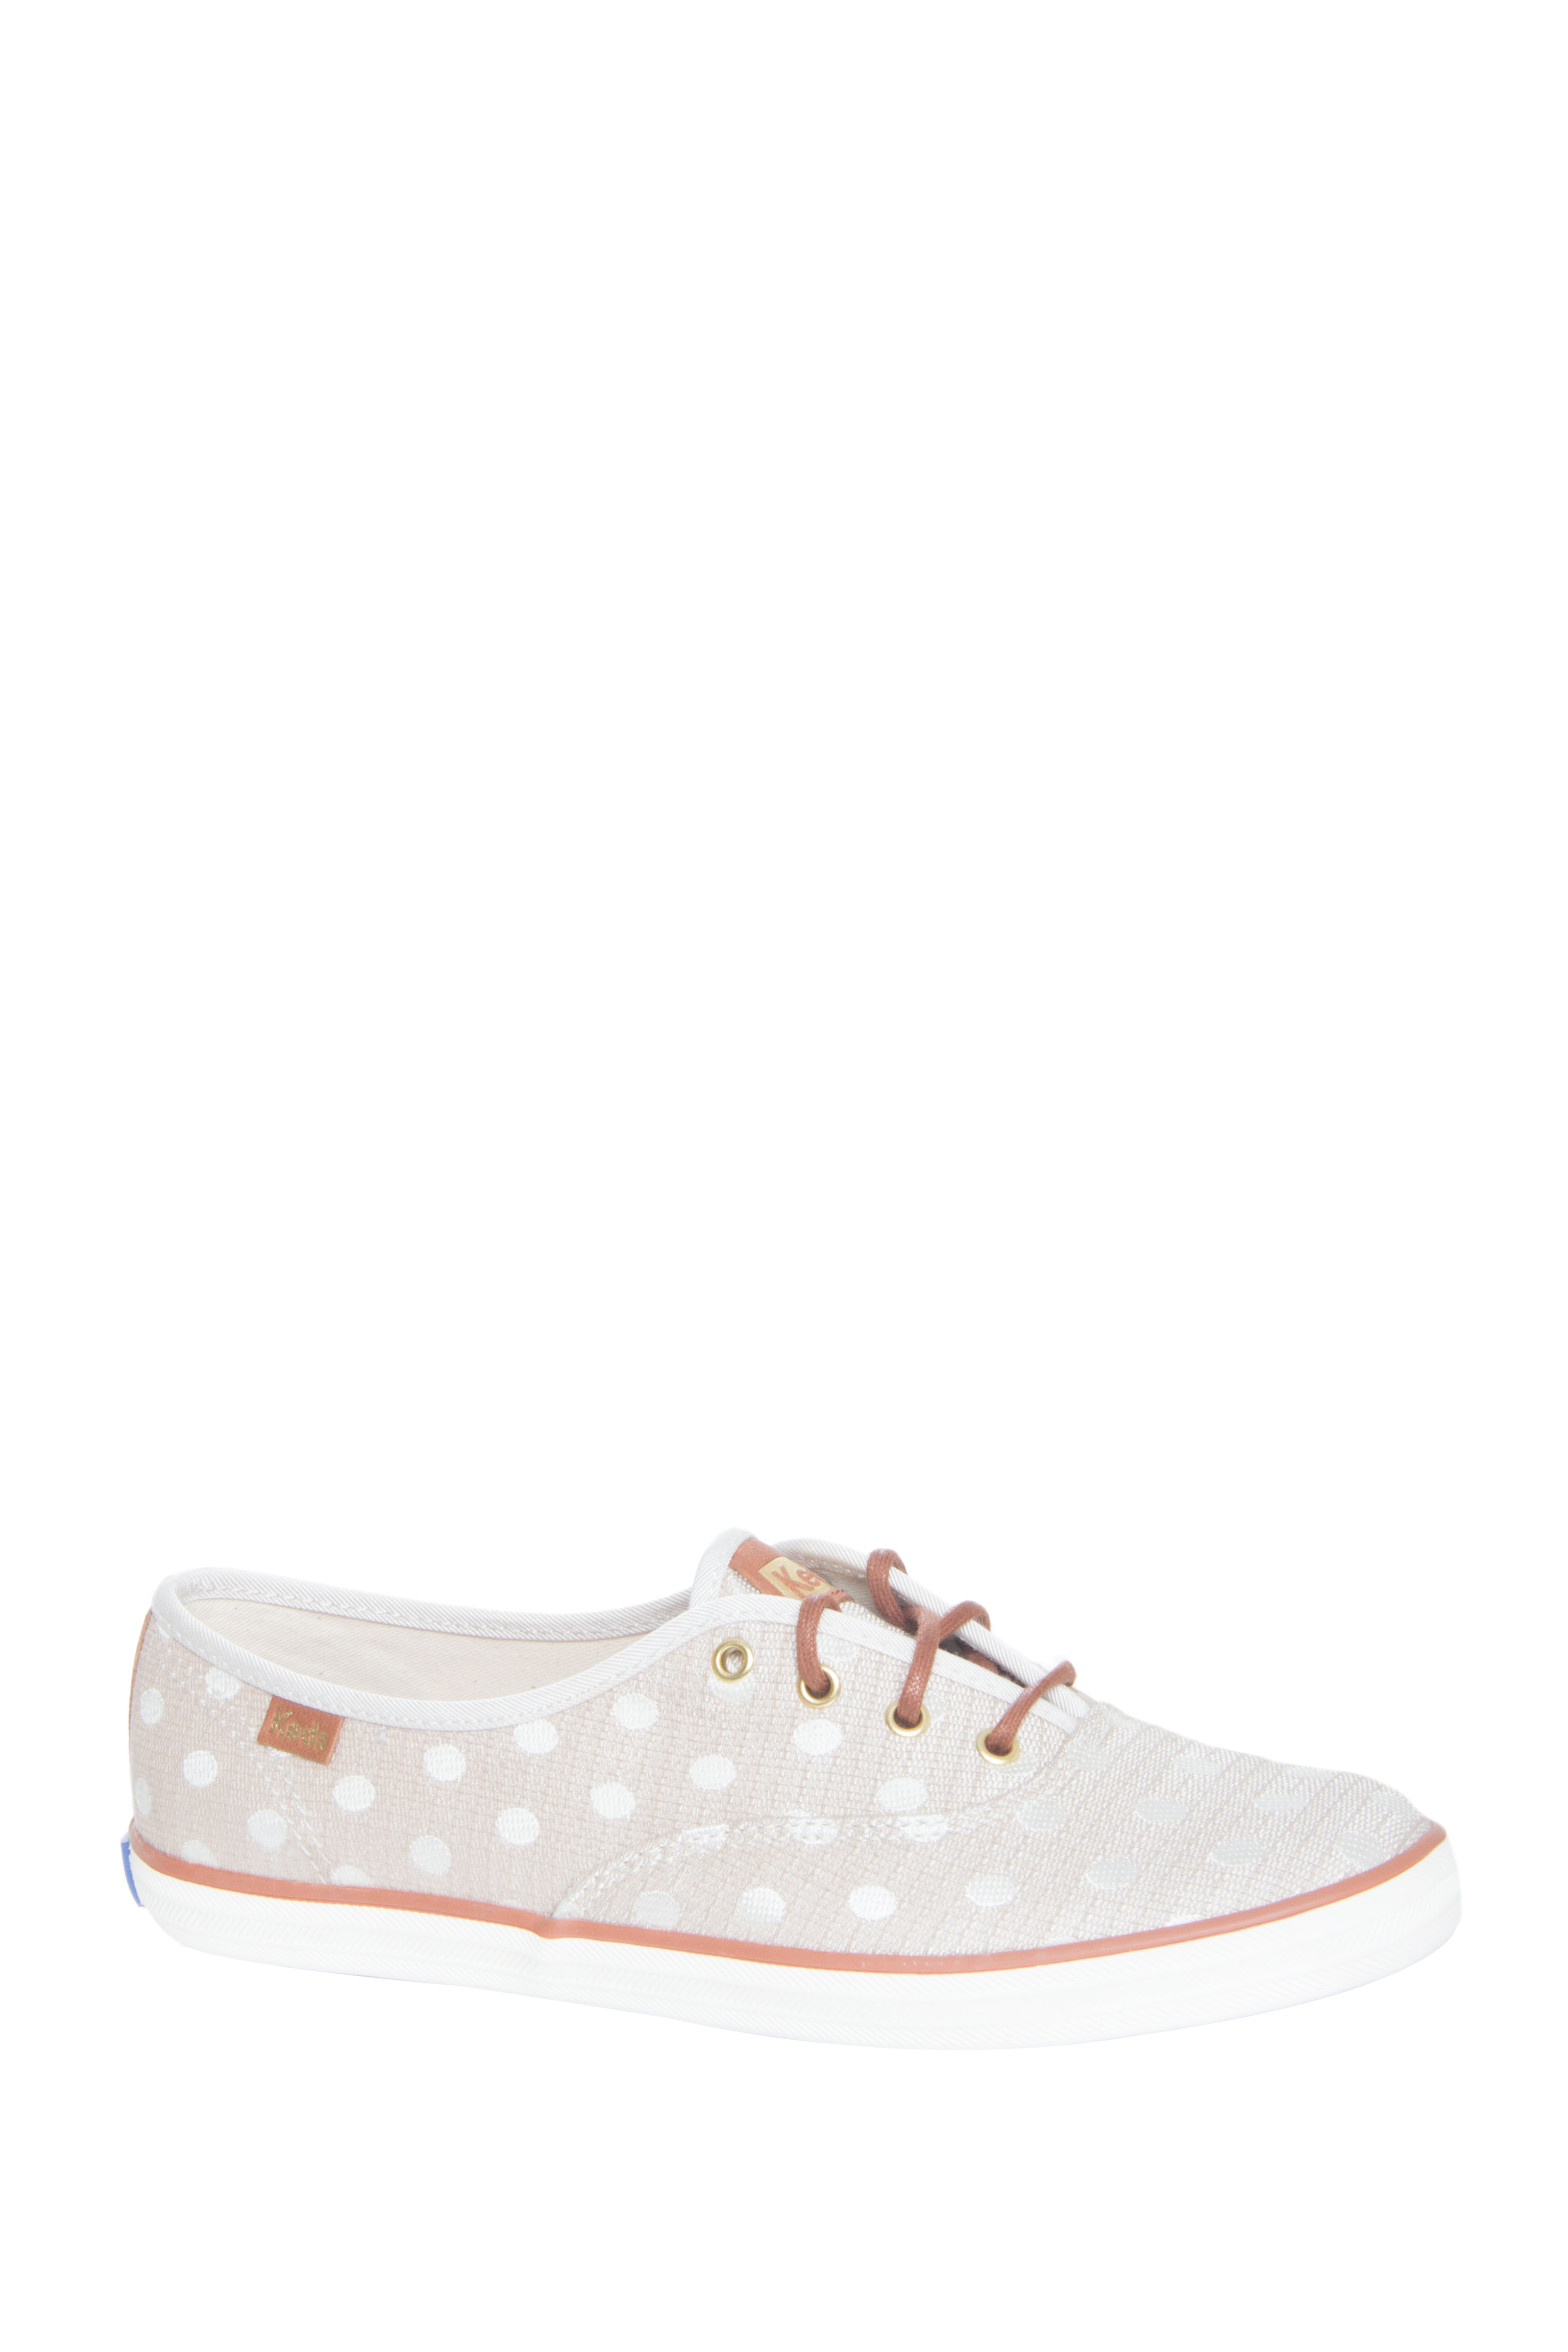 Keds Champion Jacquard Dot Low Top Sneakers - Natural Cream